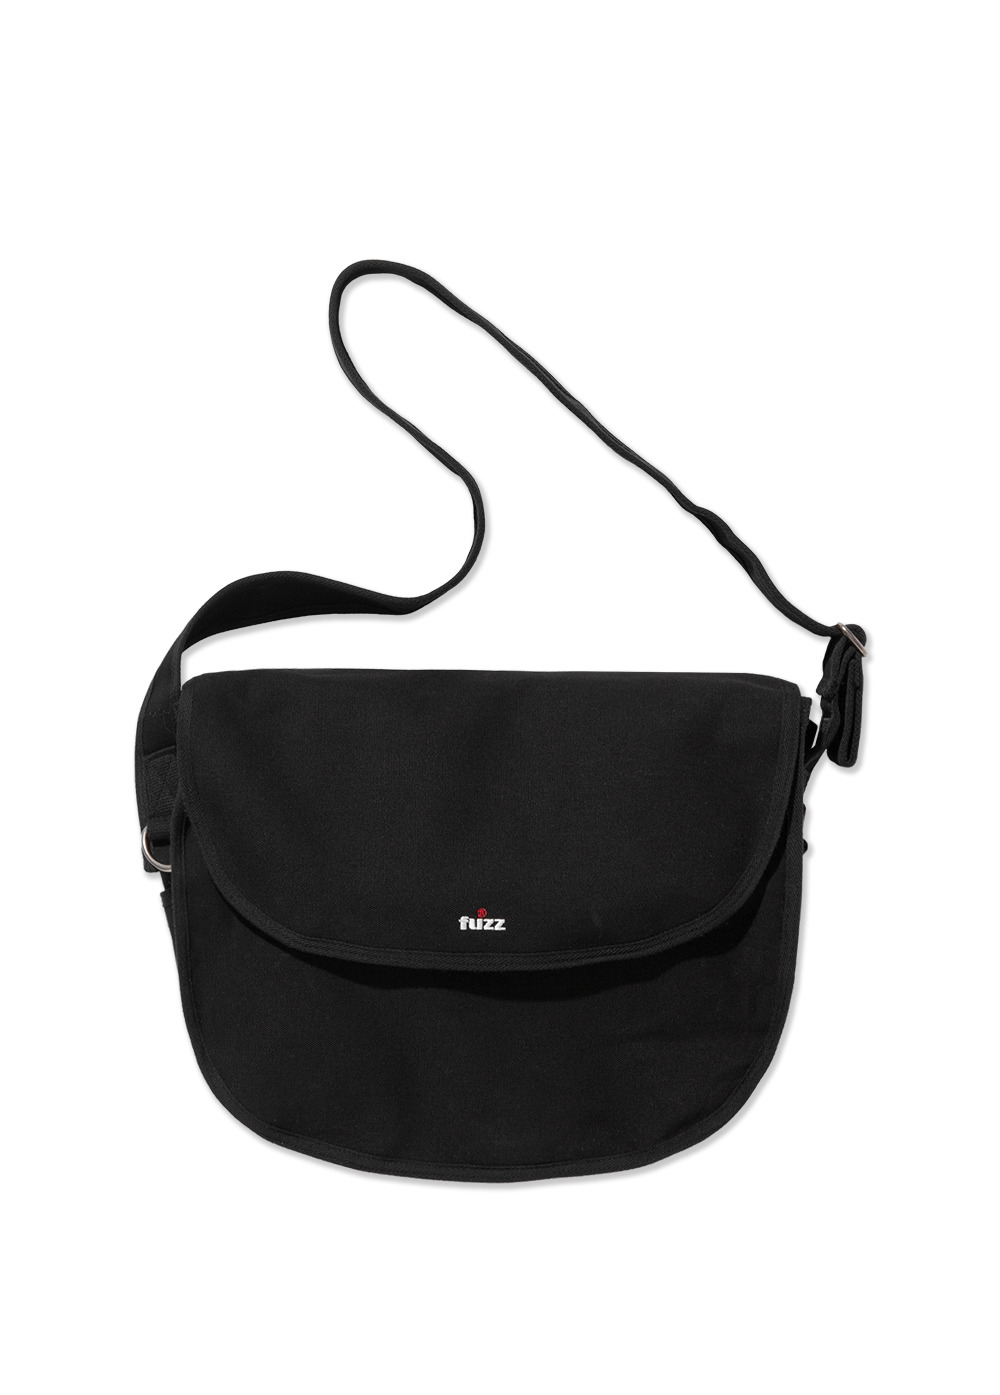 FUZZ CANVAS MESSENGER BAG black